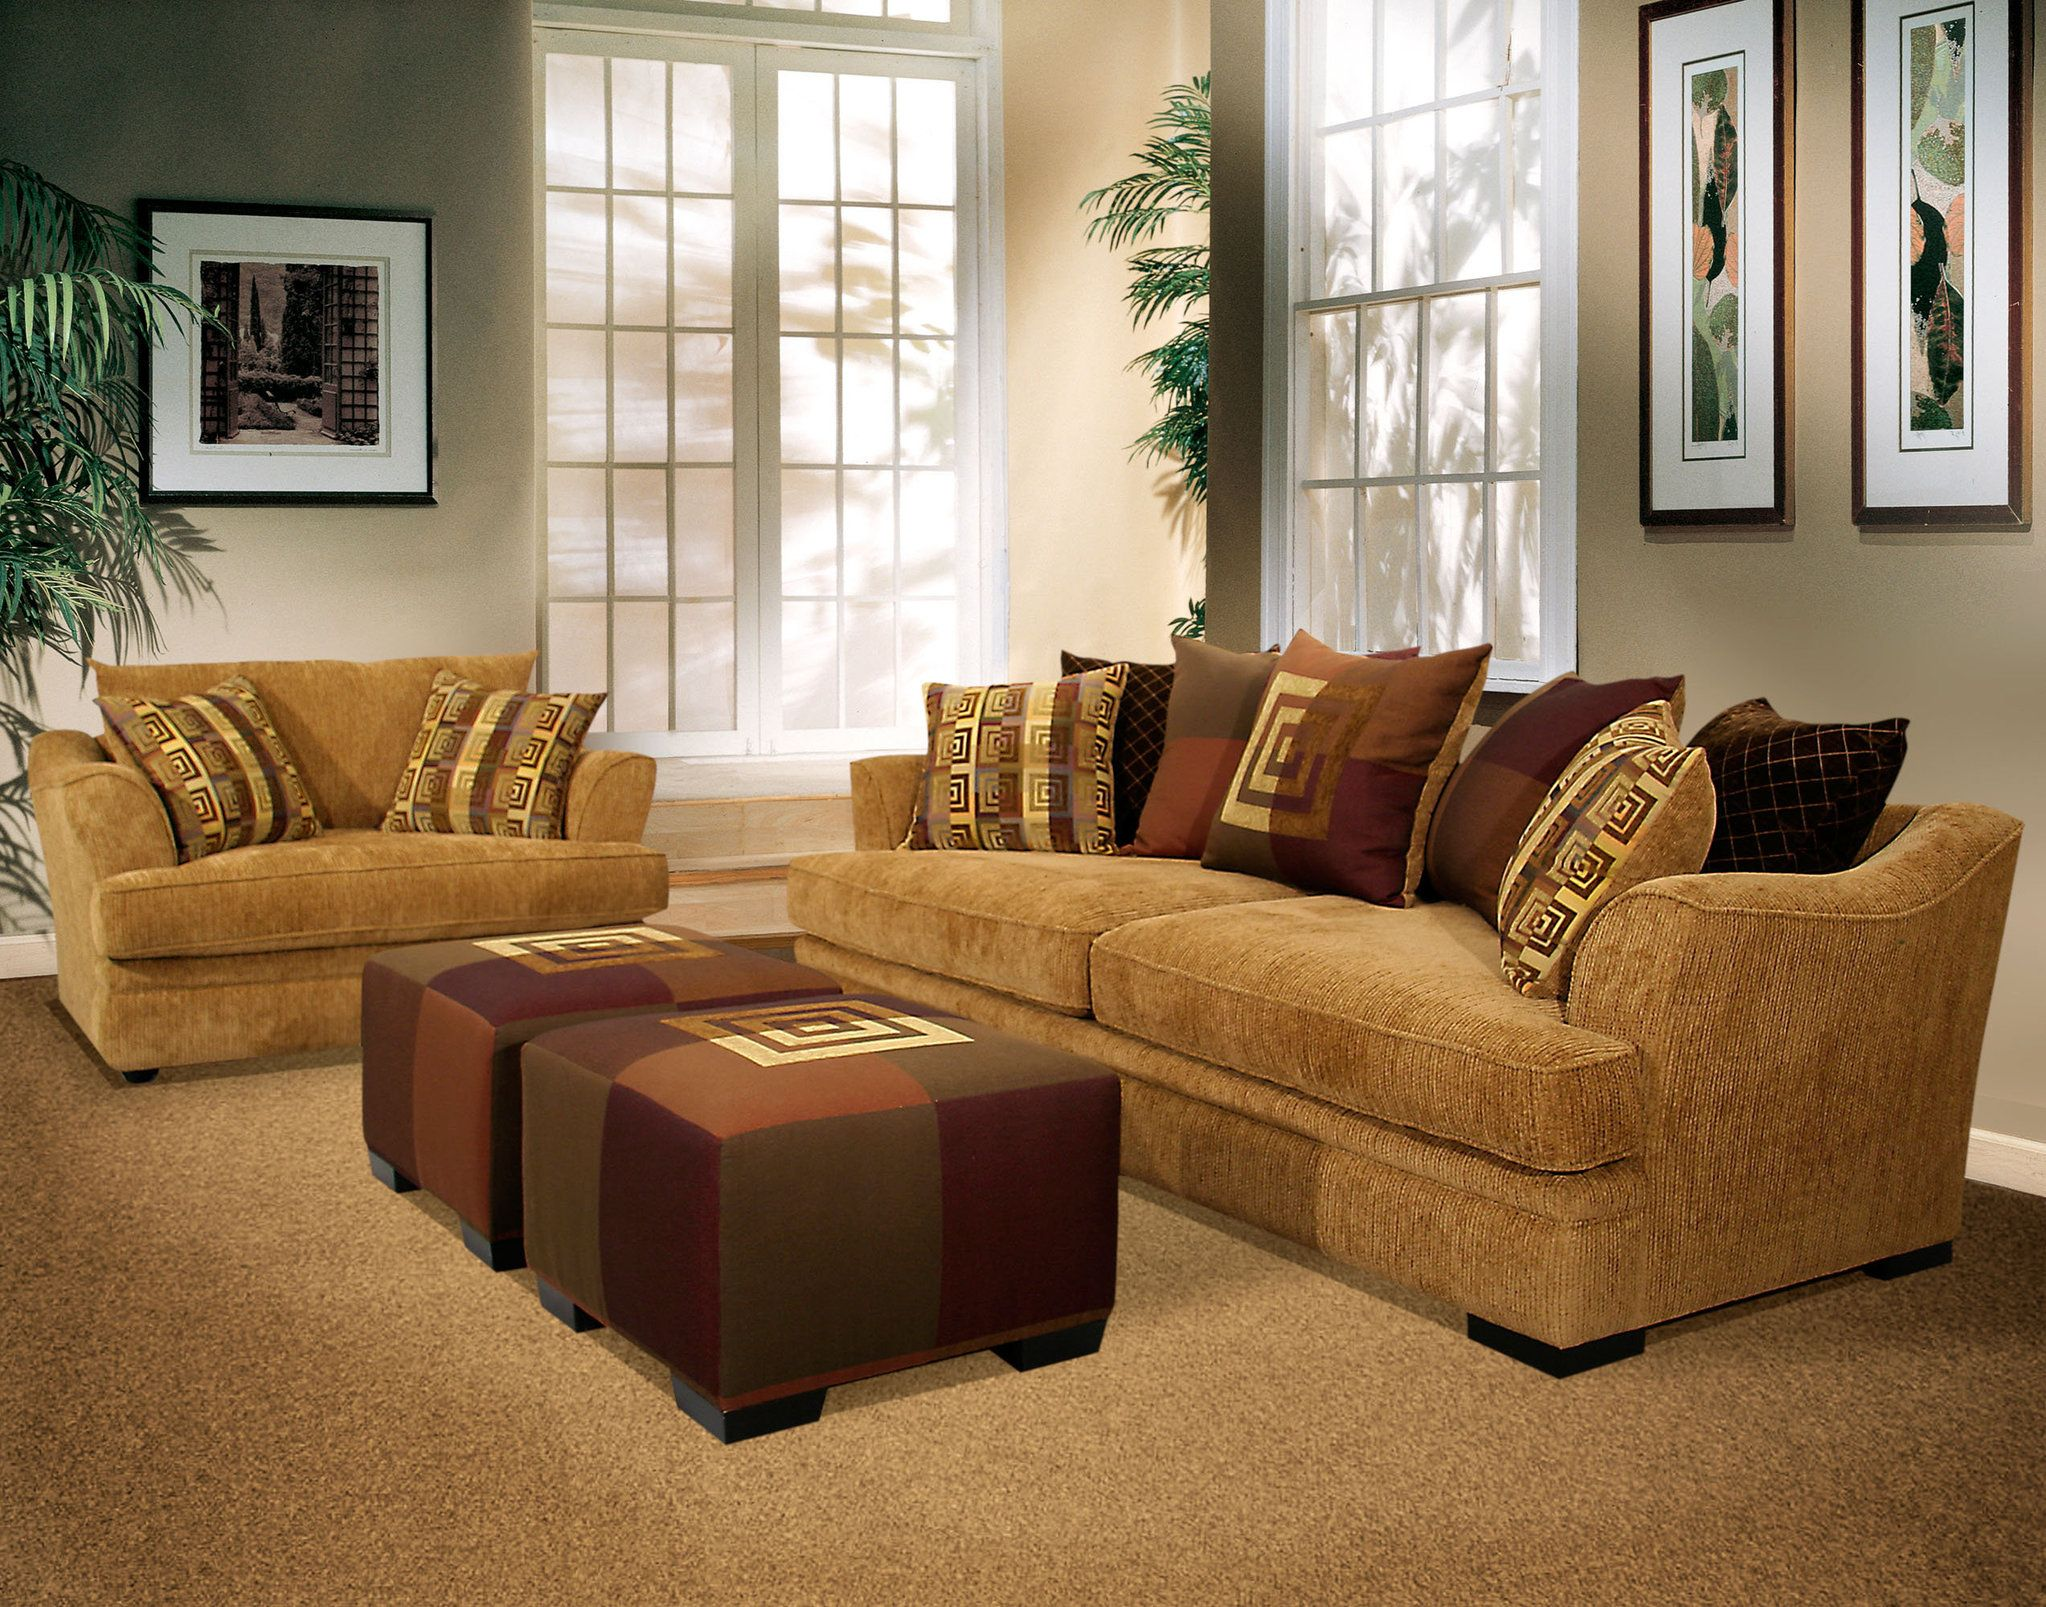 Fabric Sets Classic Two Cushion Seat Sand Colored